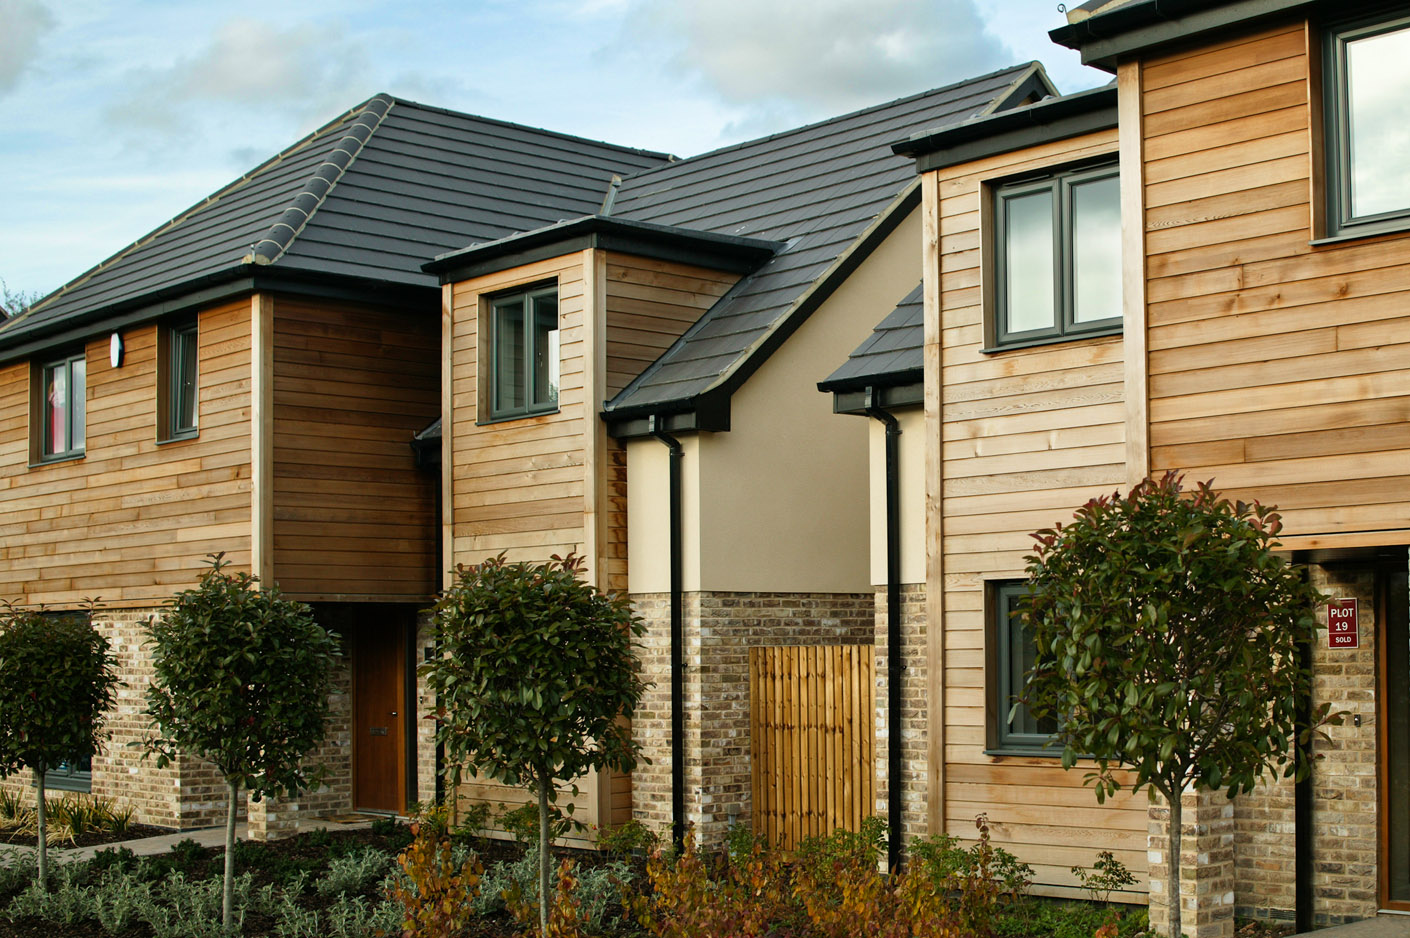 Impington Lane Housing Phase 1